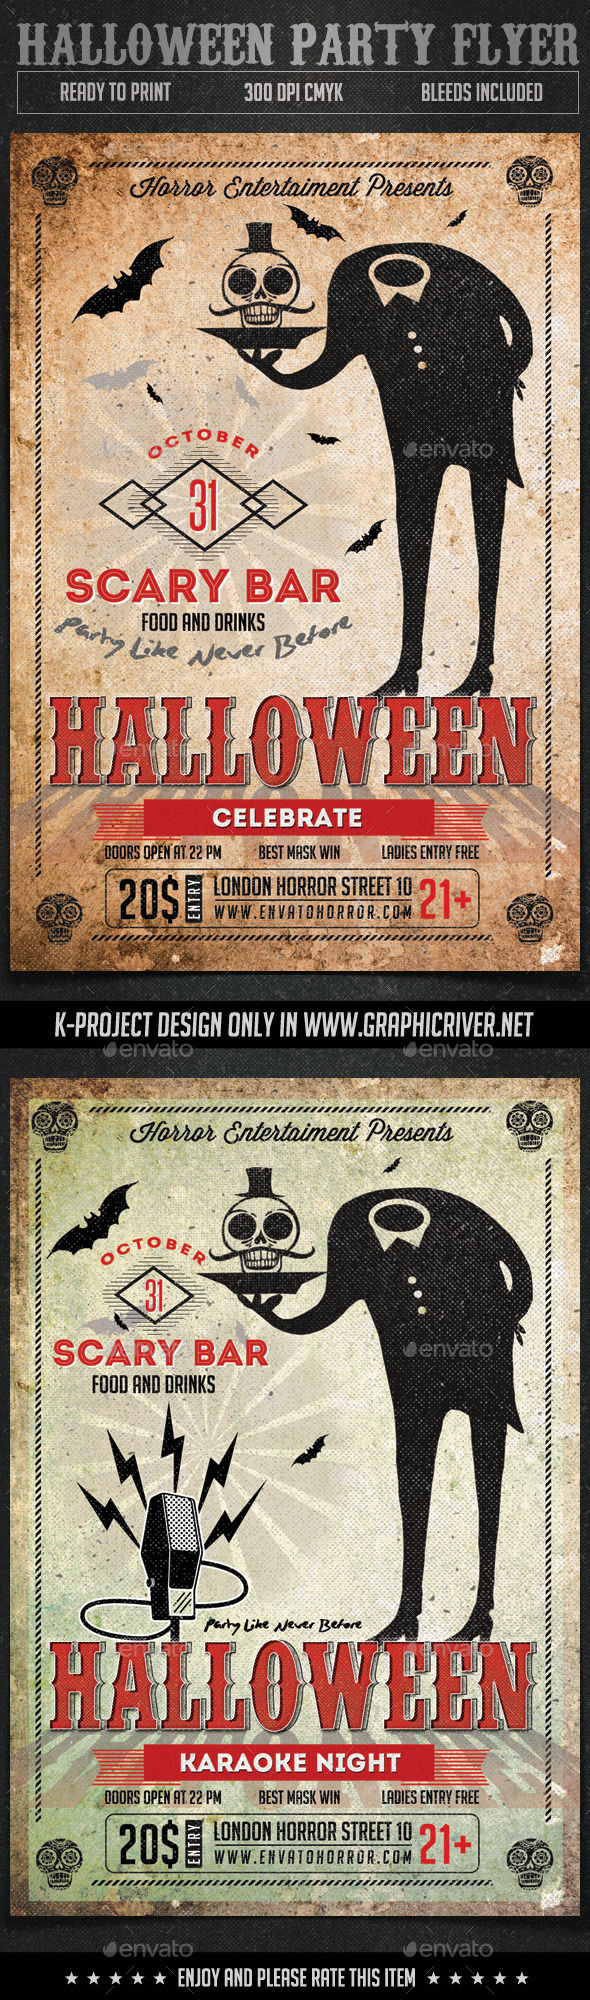 Halloween Party Flyer by K-project (Halloween party flyer)